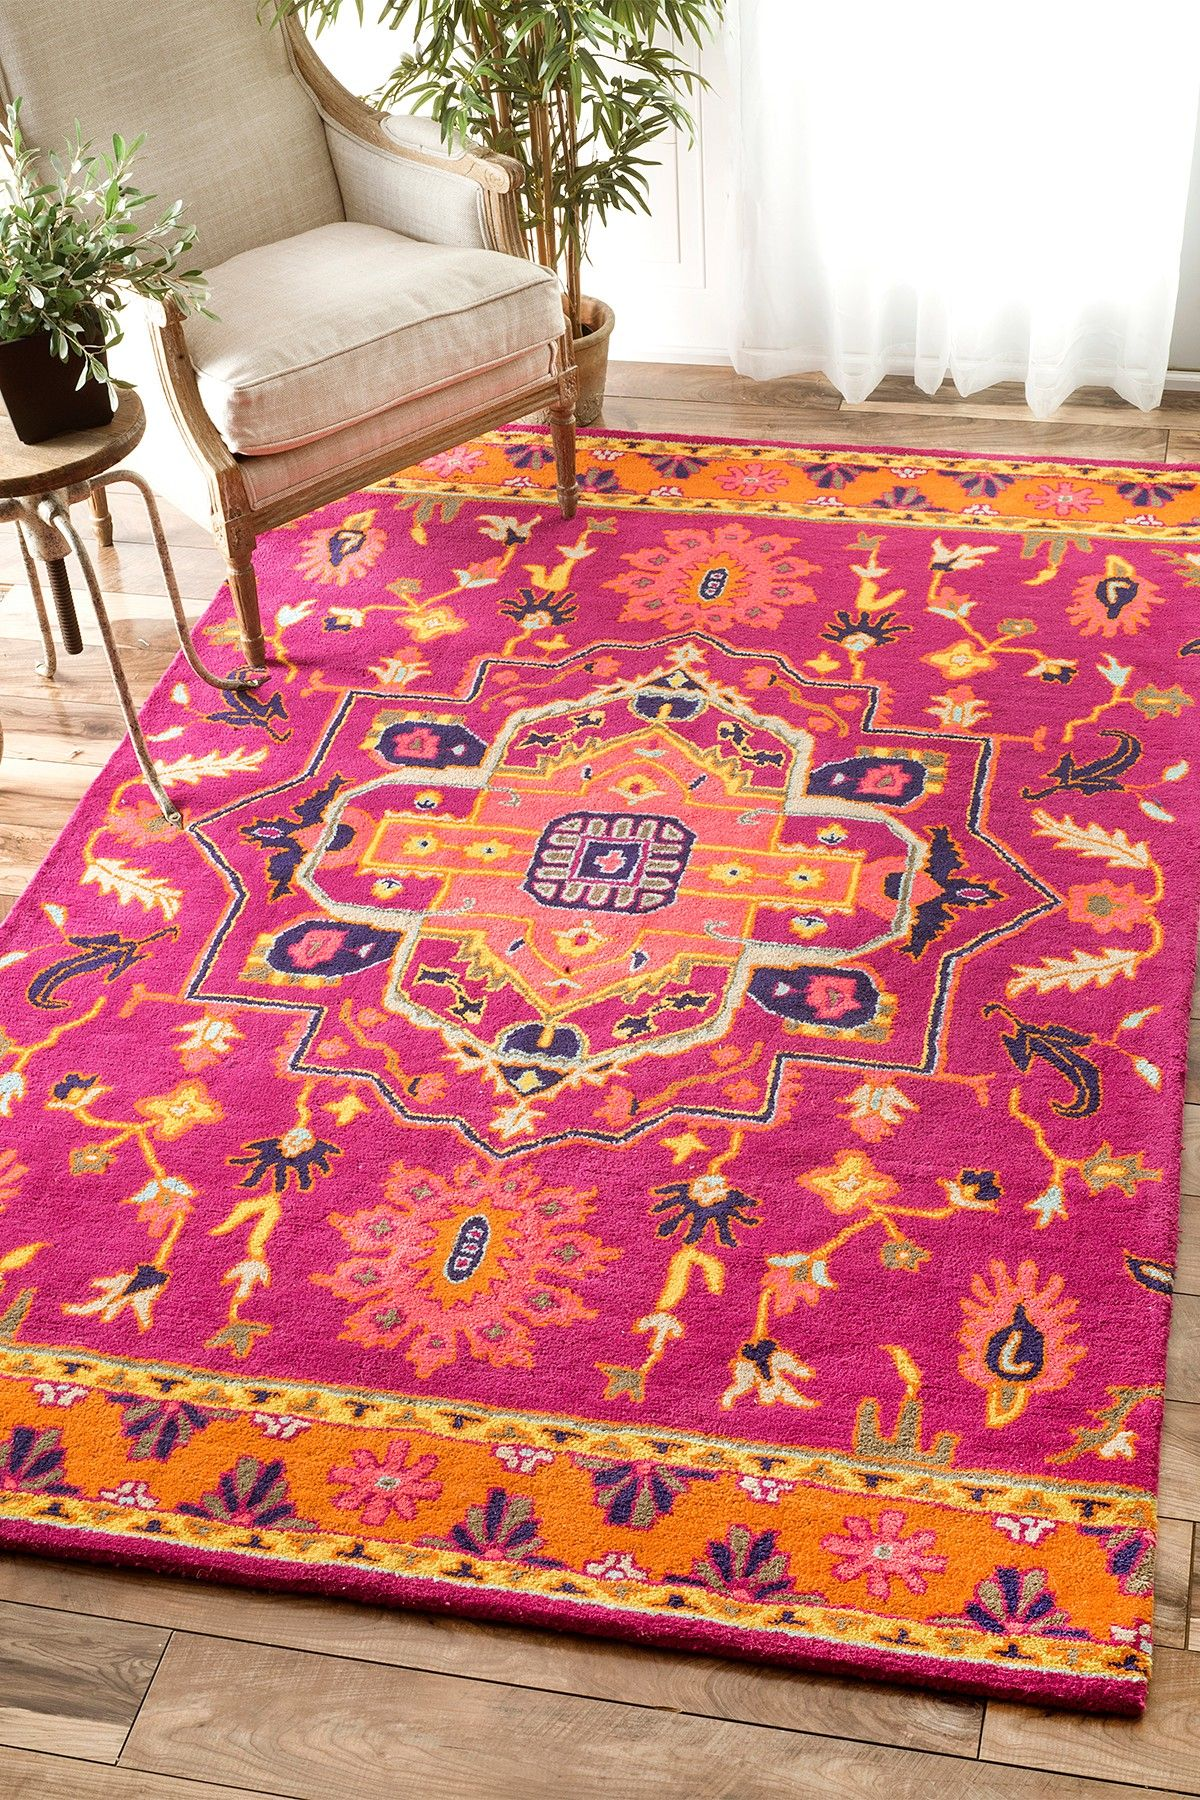 rugs usa area rugs in many styles including braided outdoor and flokati shag rugsbuy rugs at home decorating rugs